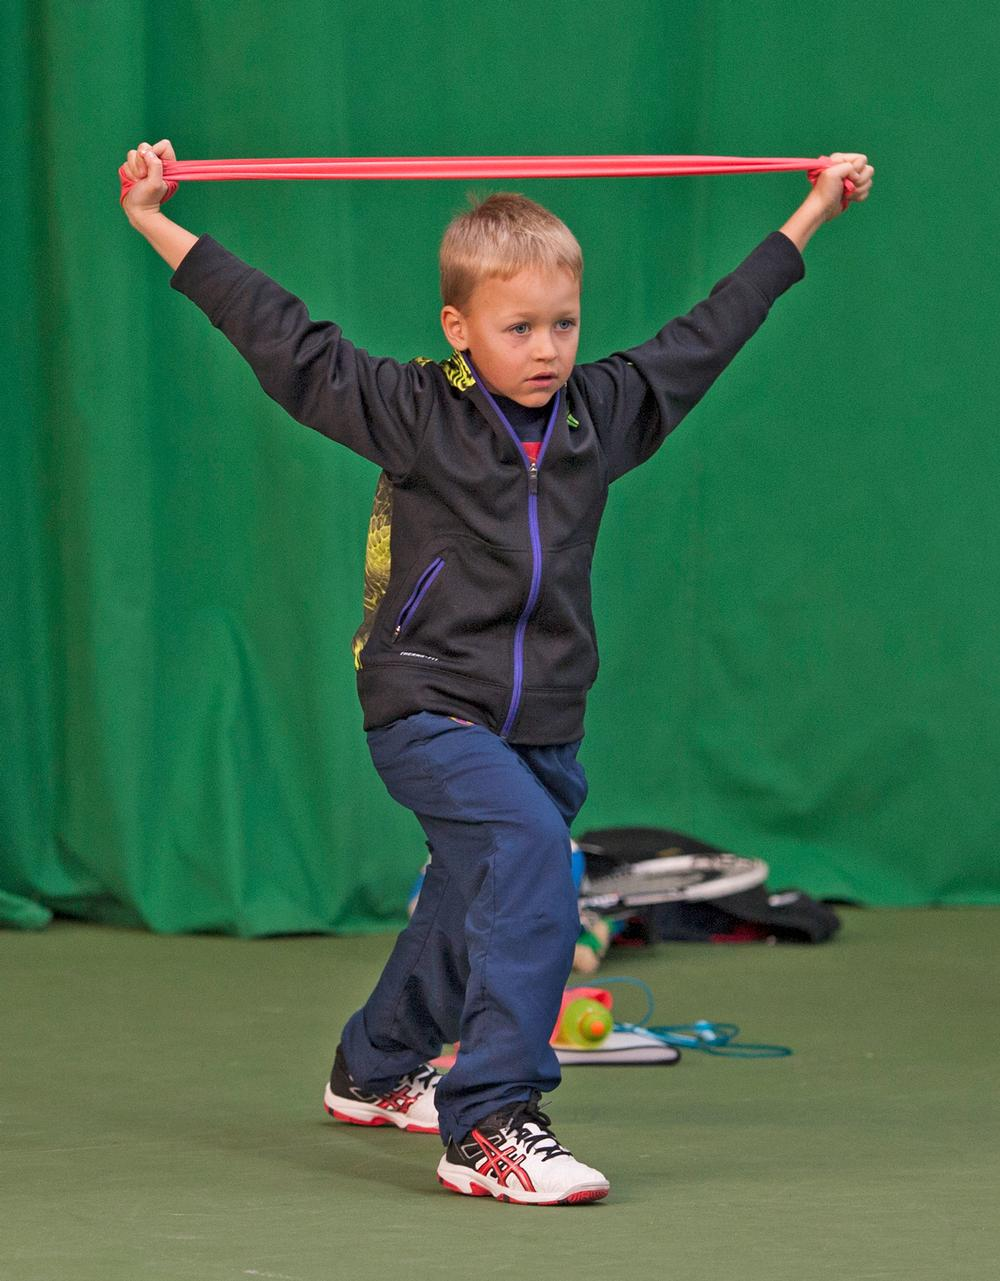 Westway's programme caters to athletes from nine to 13 years of age